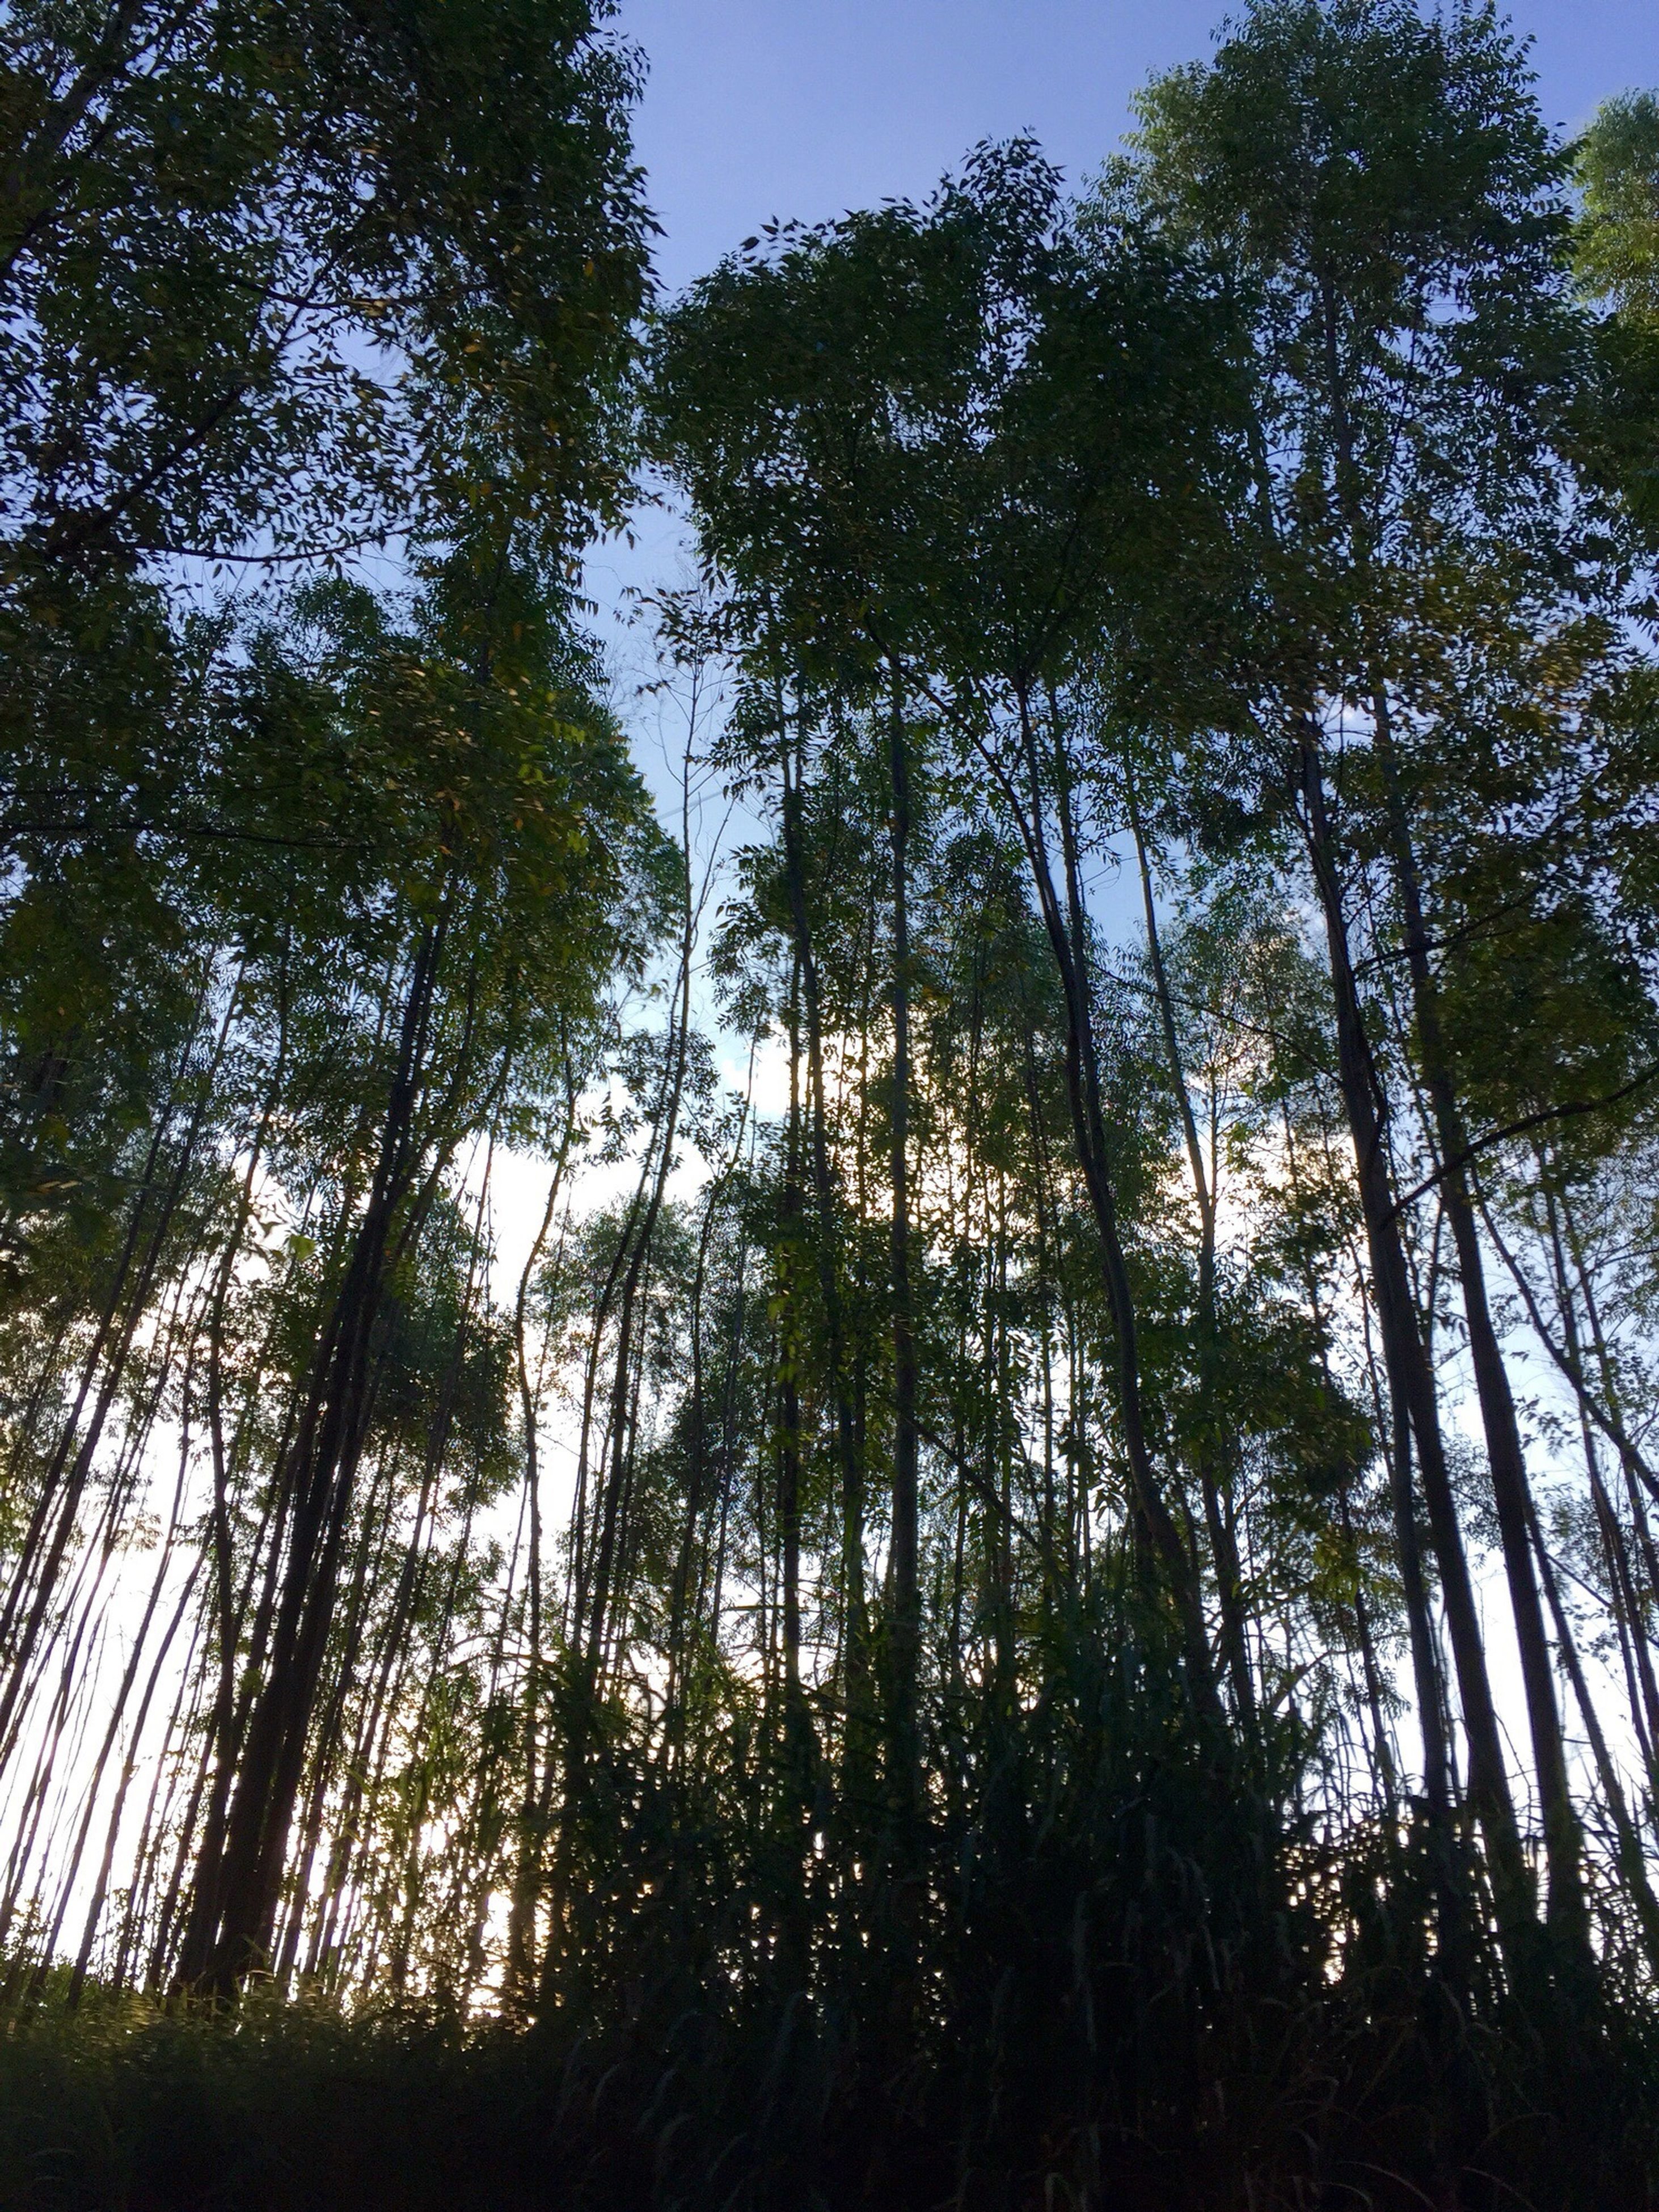 low angle view, tree, tree trunk, forest, growth, tranquility, tall - high, tall, woodland, tranquil scene, scenics, nature, branch, beauty in nature, green, sky, day, non-urban scene, outdoors, blue, solitude, woods, green color, lush foliage, no people